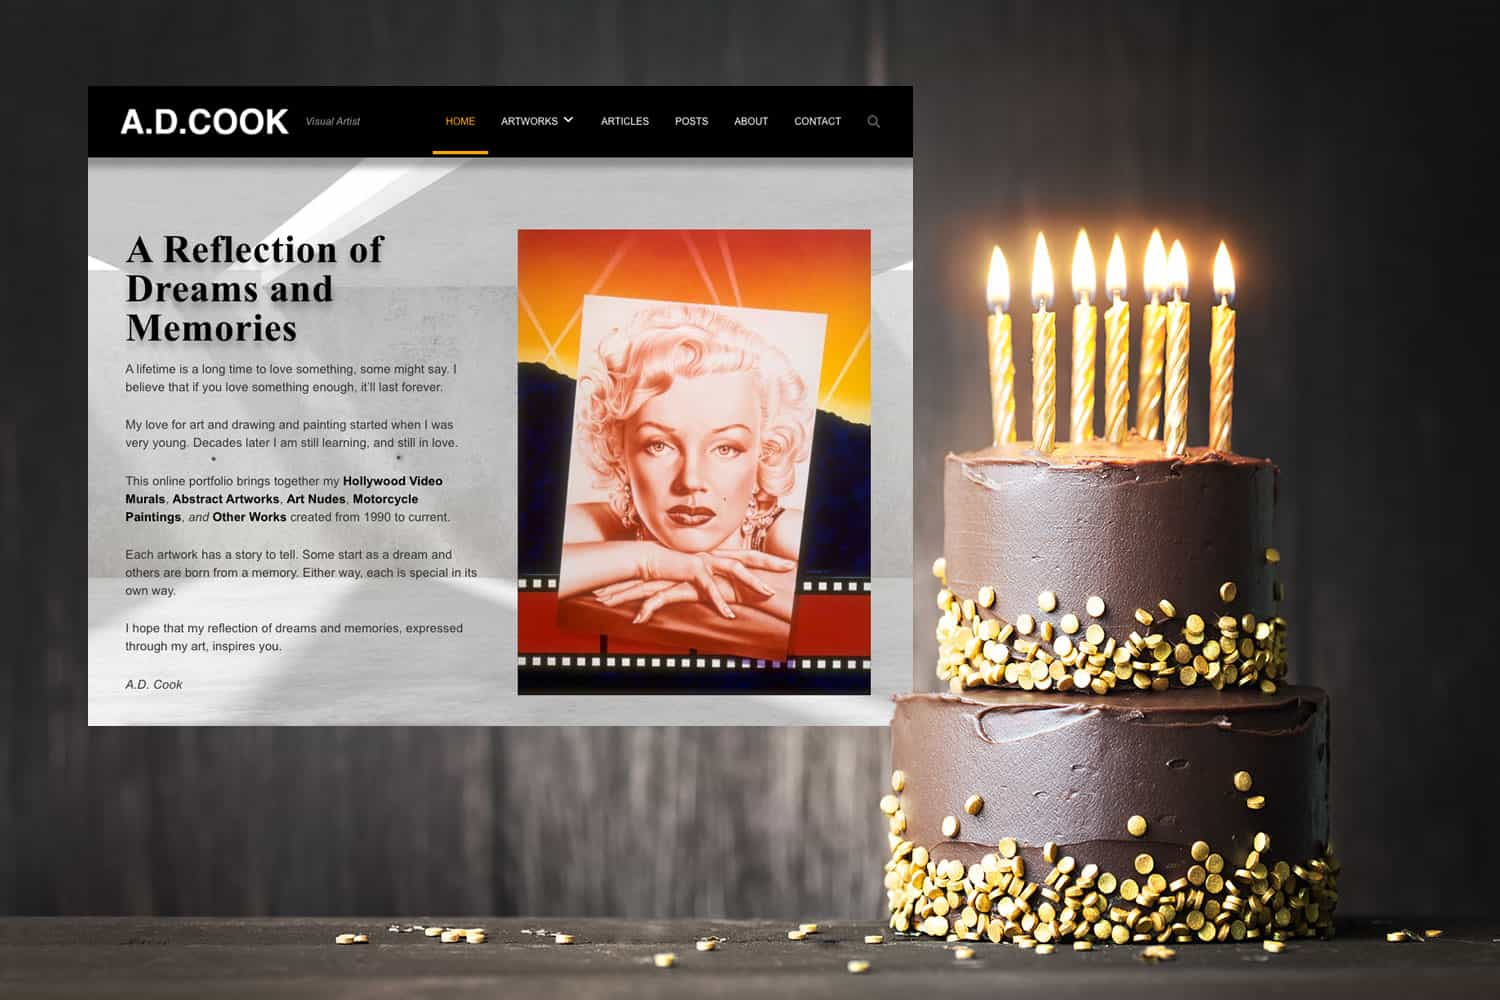 ADCook.com celebrates 24 years online